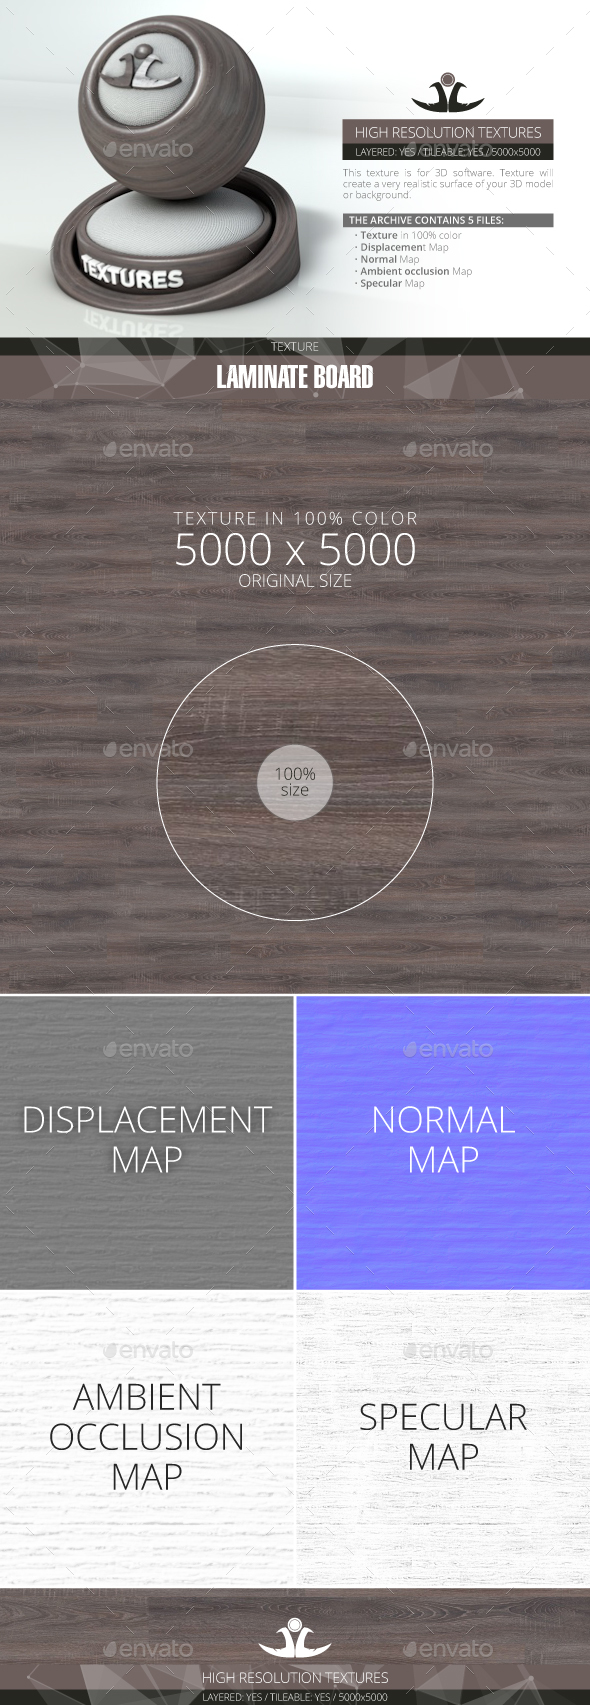 Laminate Board 32 - 3DOcean Item for Sale